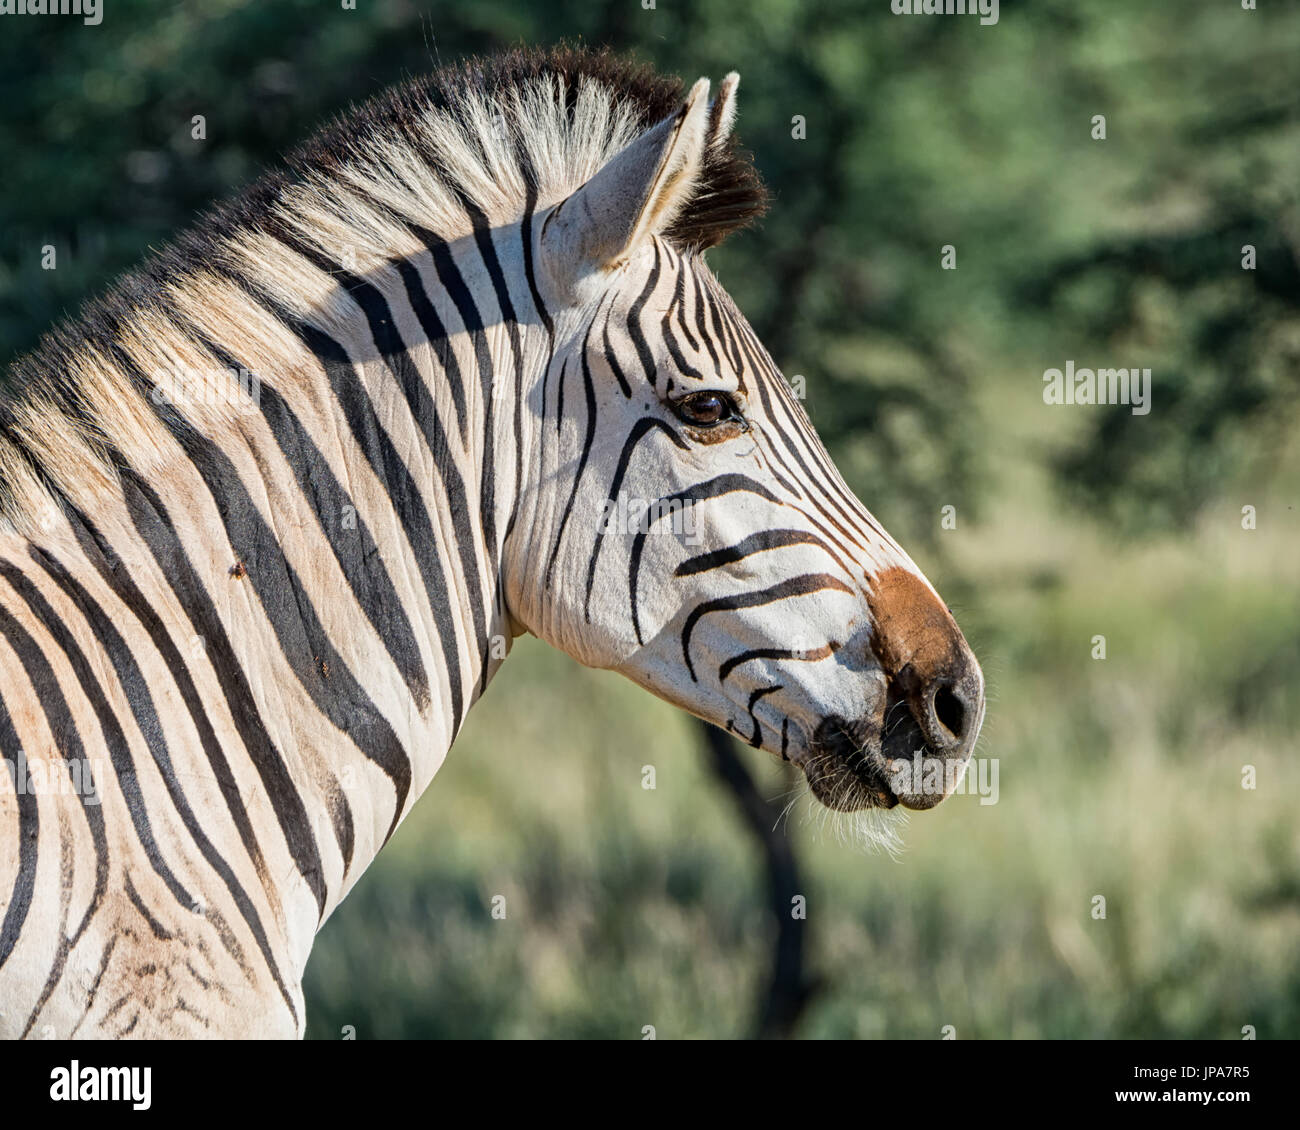 Portrait of a Zebra in Southern Africa - Stock Image